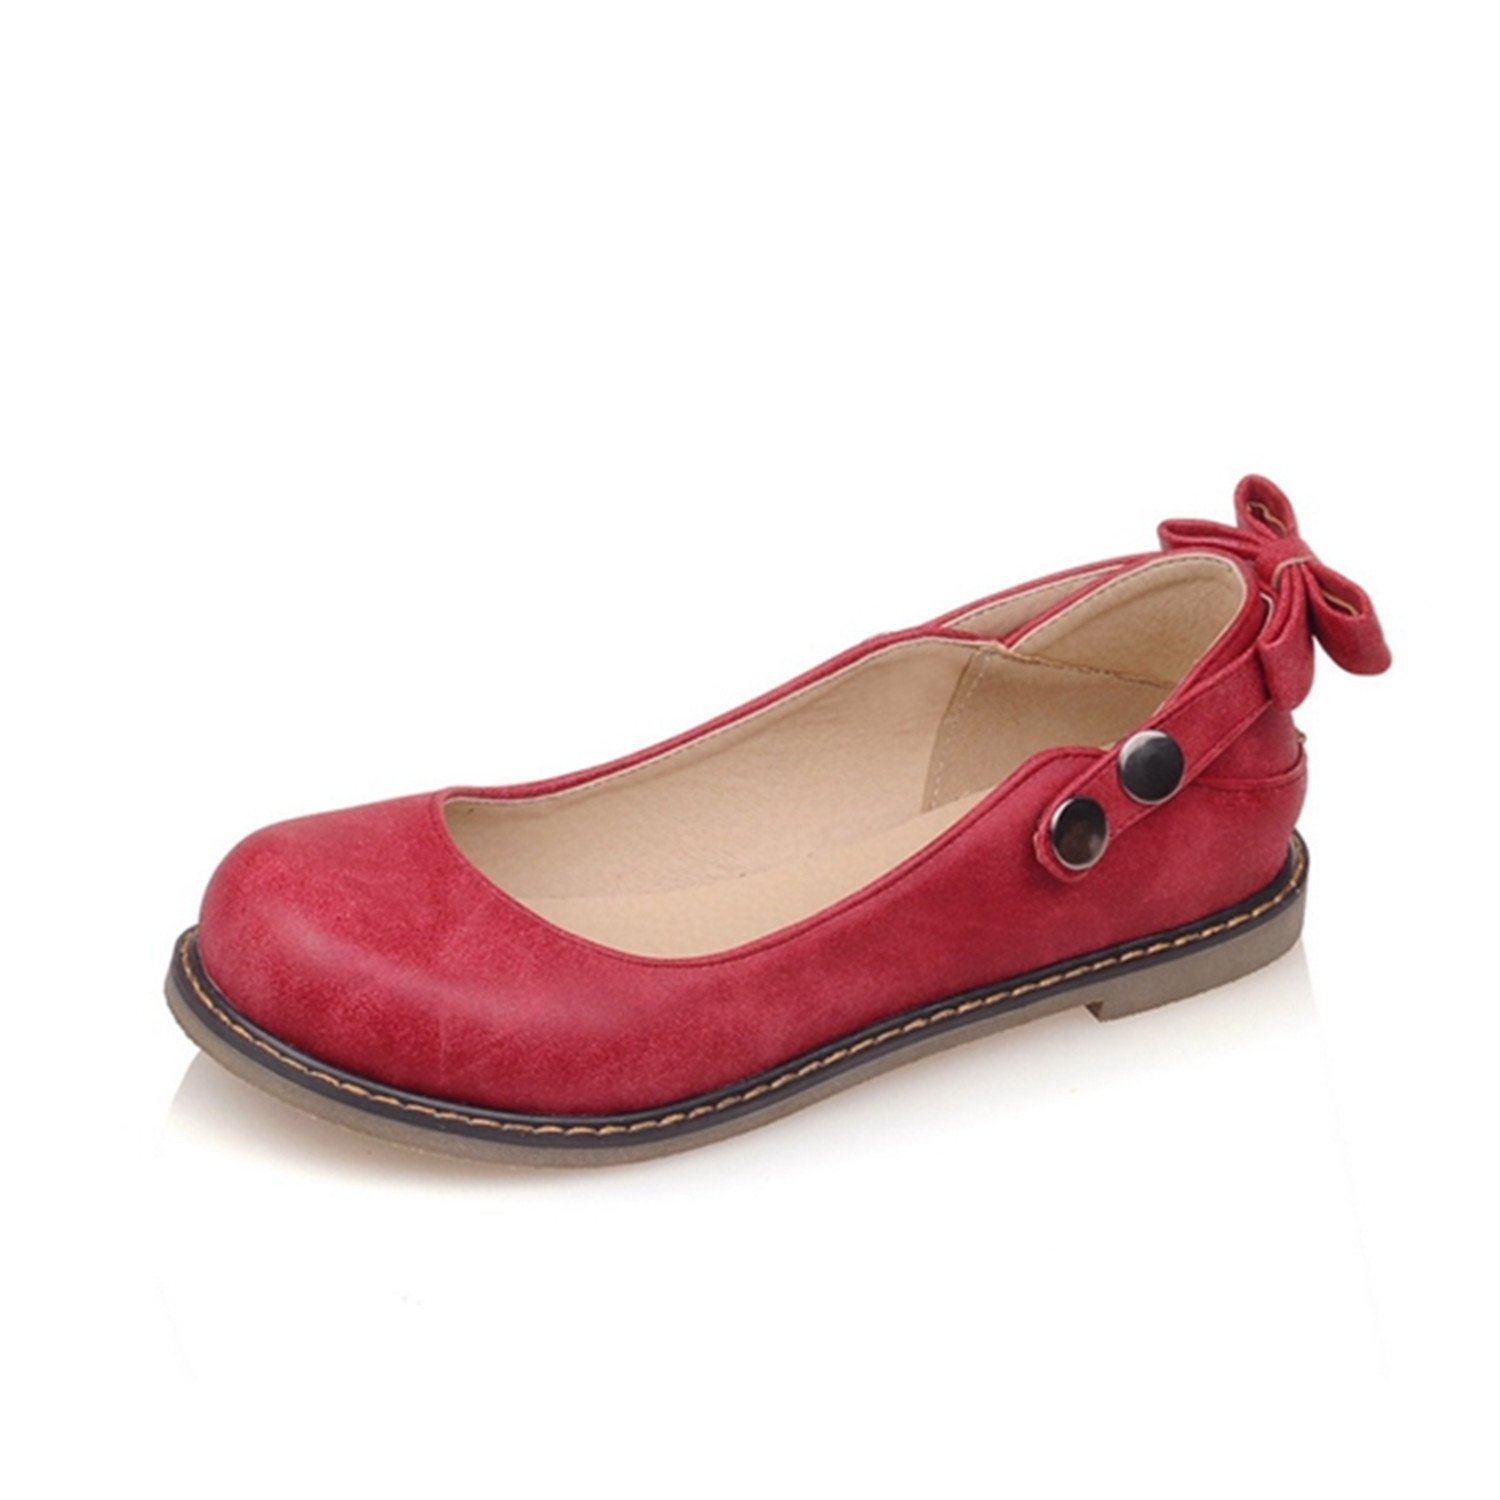 Feilongzaitianba Butterfly Knot Straps Button Rivets Round Toe Lady Cute Flats Shoes Woman Summer Spring Casual Ql6650